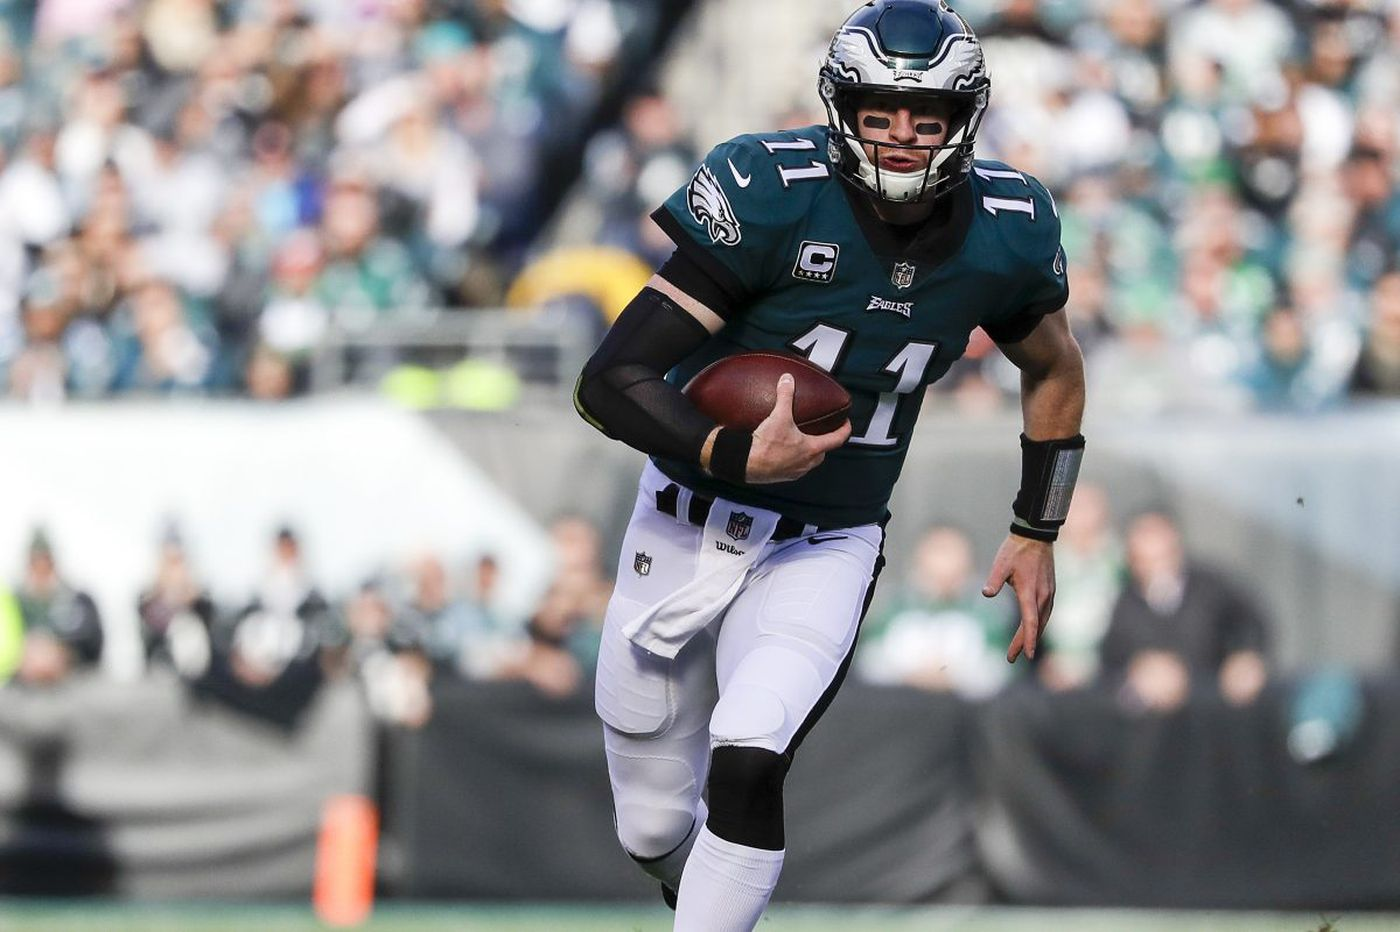 Lane Johnson rips Donovan McNabb over comments made about Carson Wentz